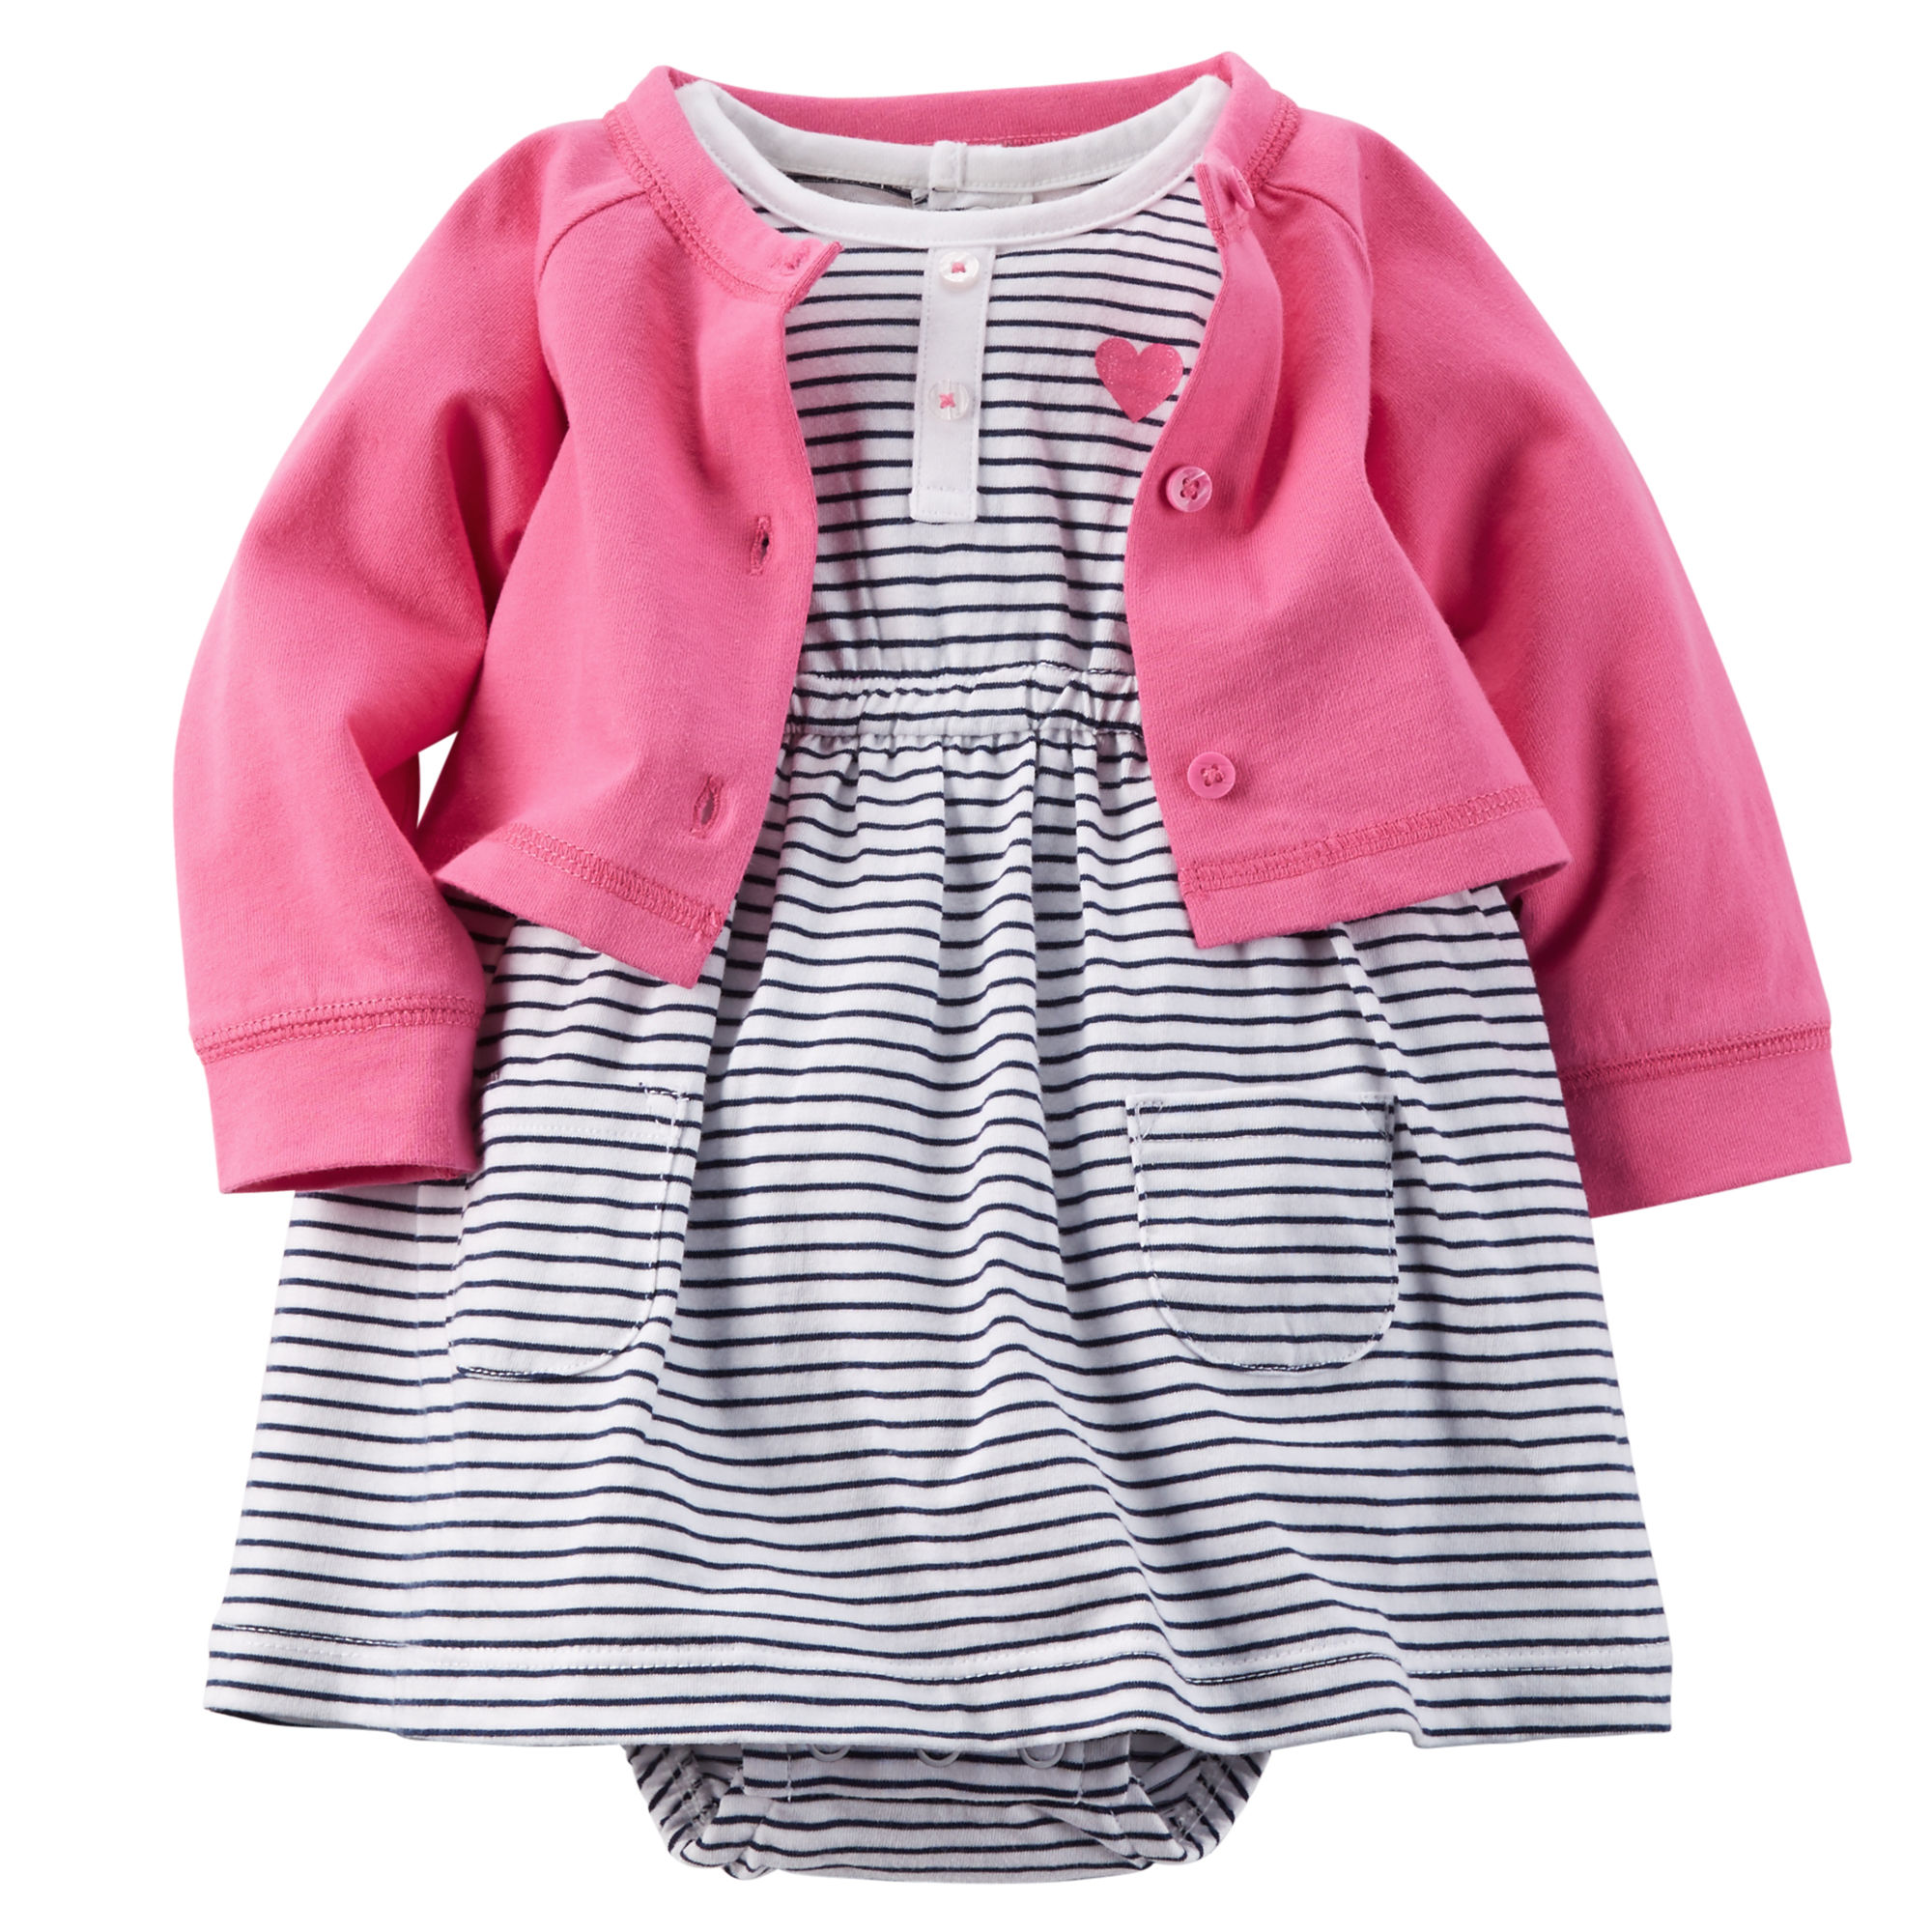 Carters Baby Girl Romper Dress Card End 6 2 2020 7 26 Pm